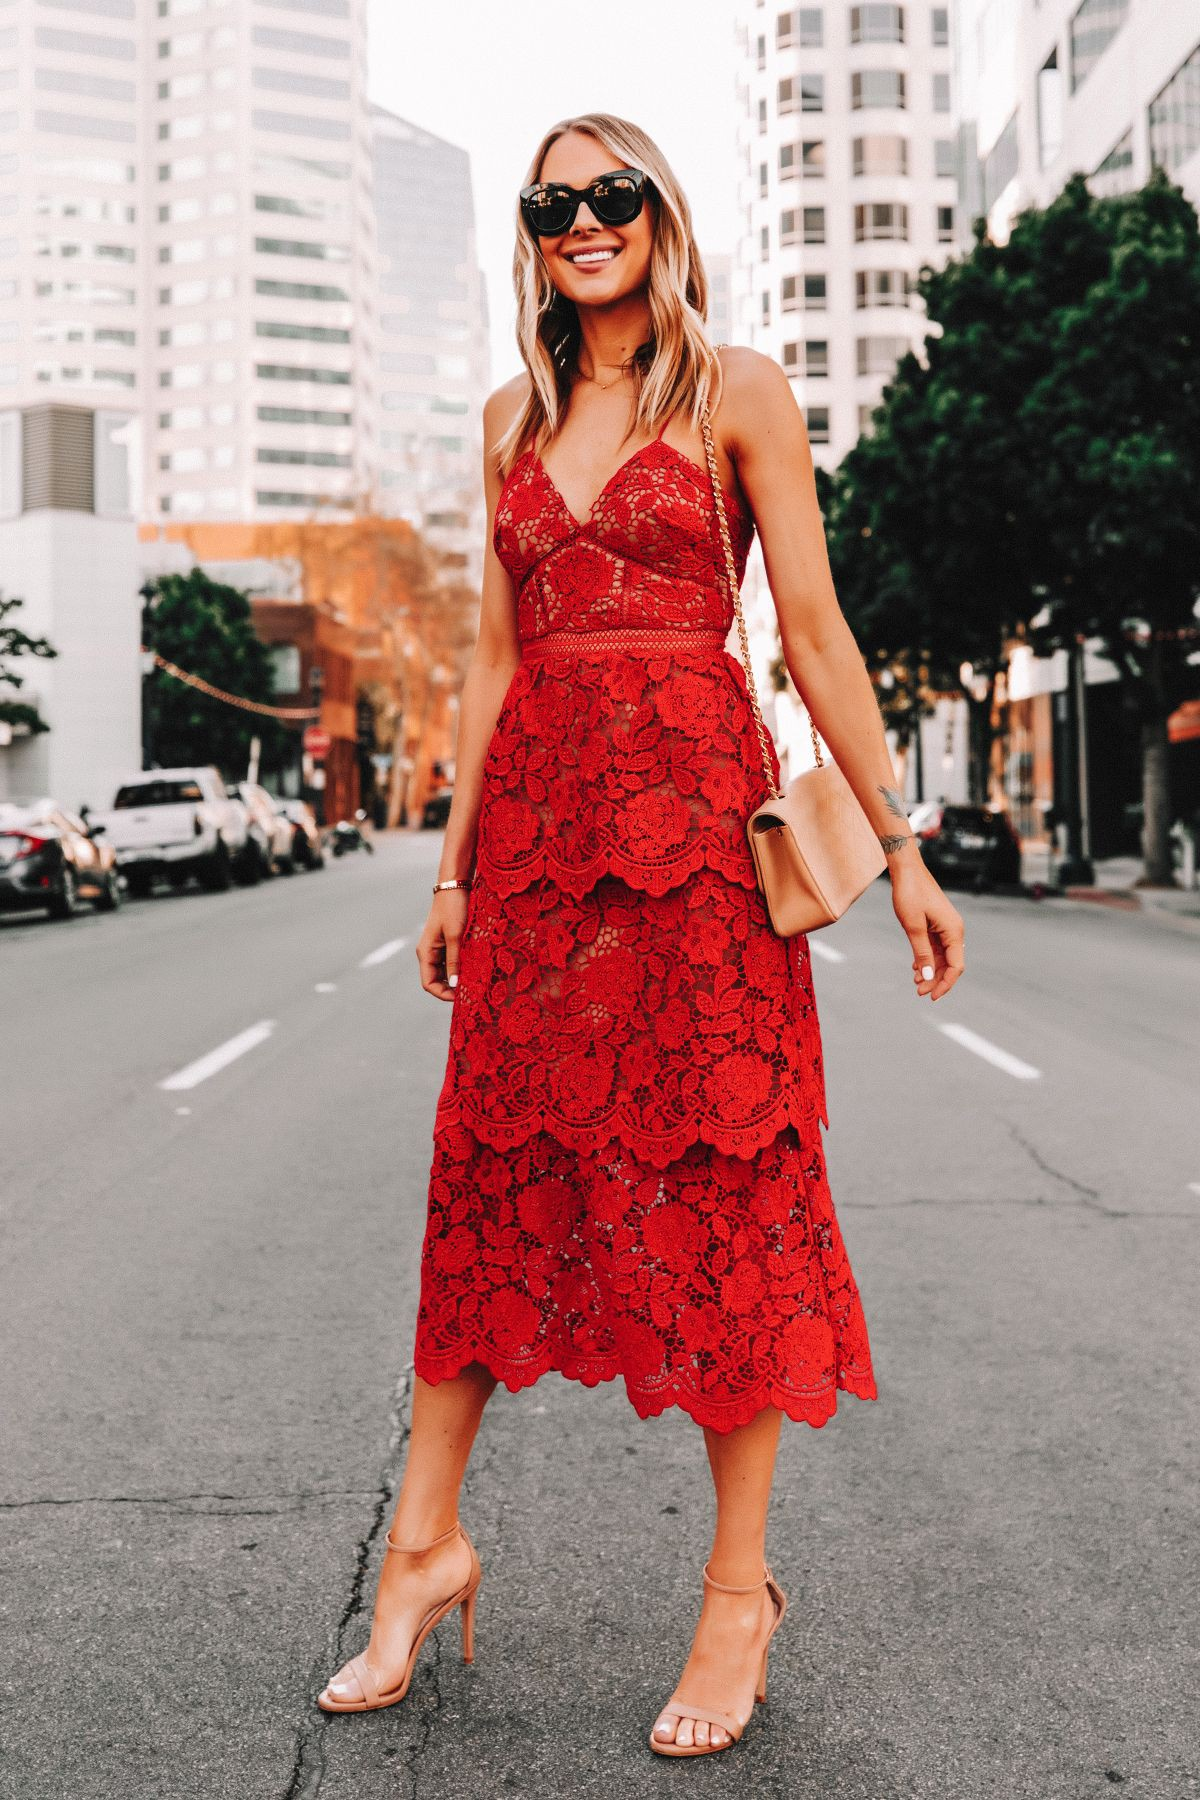 Red outfit instagram with cocktail dress, wedding dress, dress